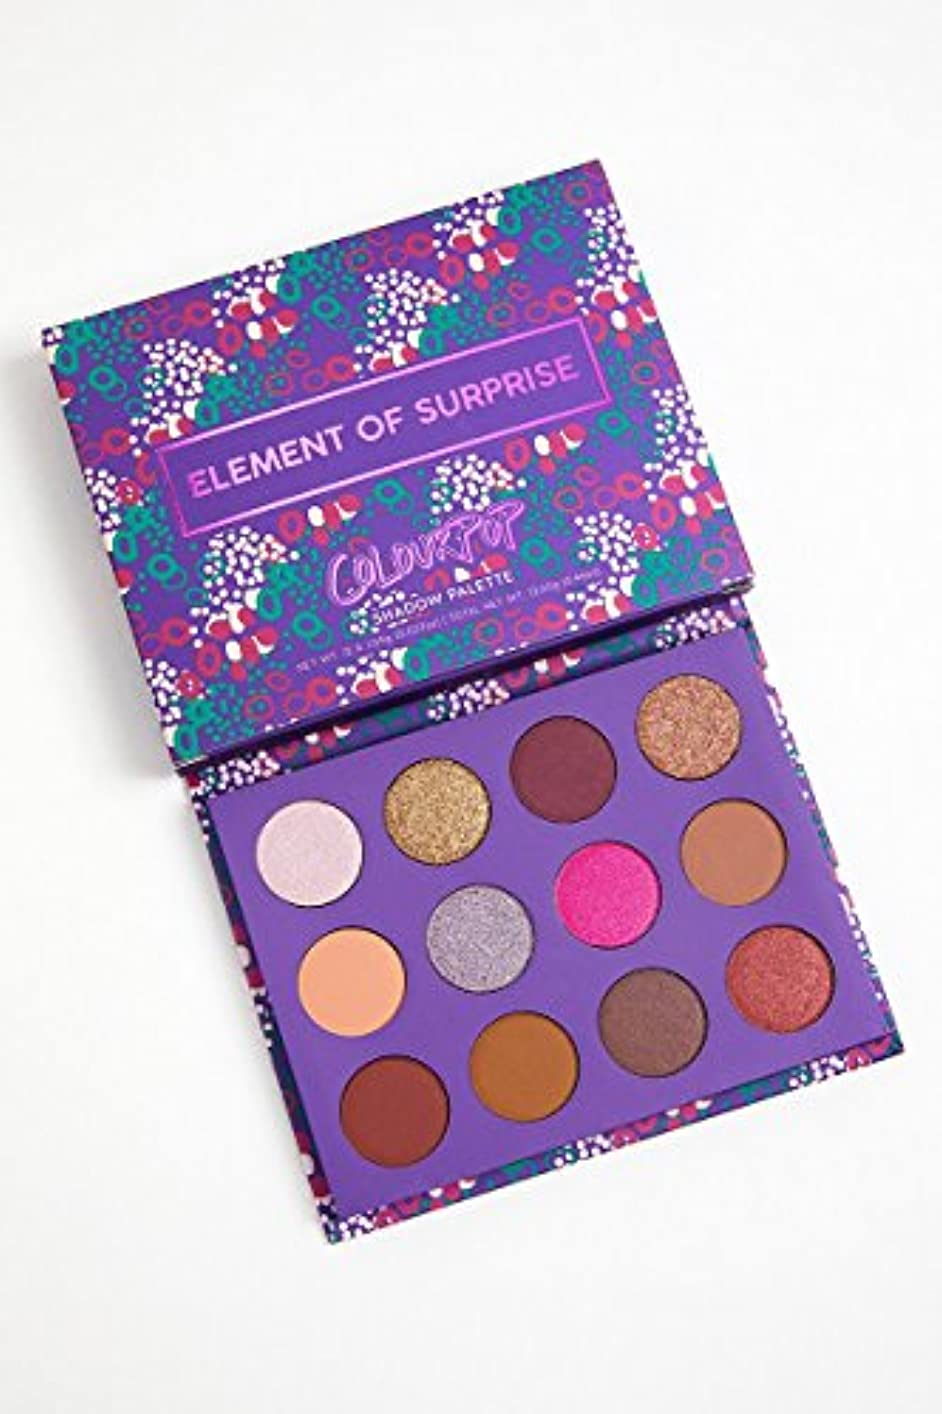 ラッドヤードキップリングフルーツひばりColourPop - Pressed Powder Shadow Palette - Element of Surprise